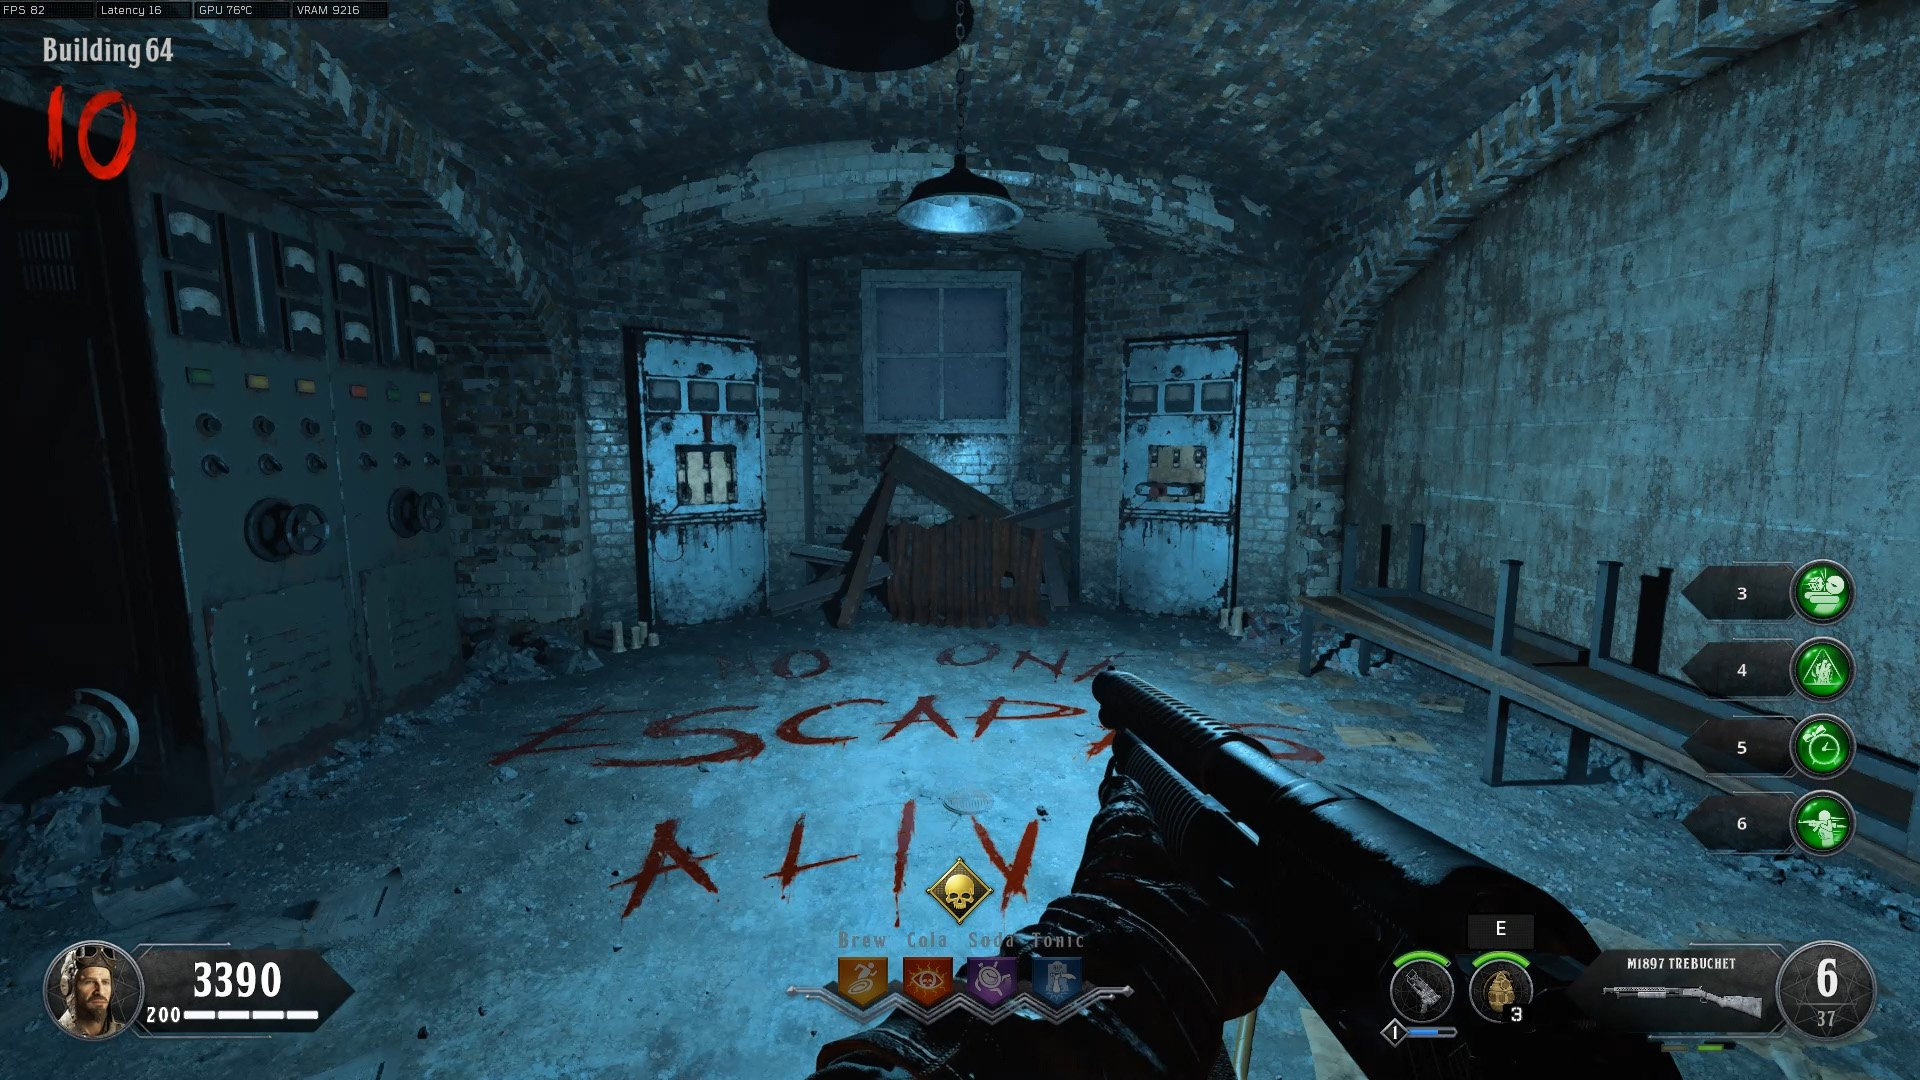 How To Turn On The Power In Blood Of The Dead Call Of Duty